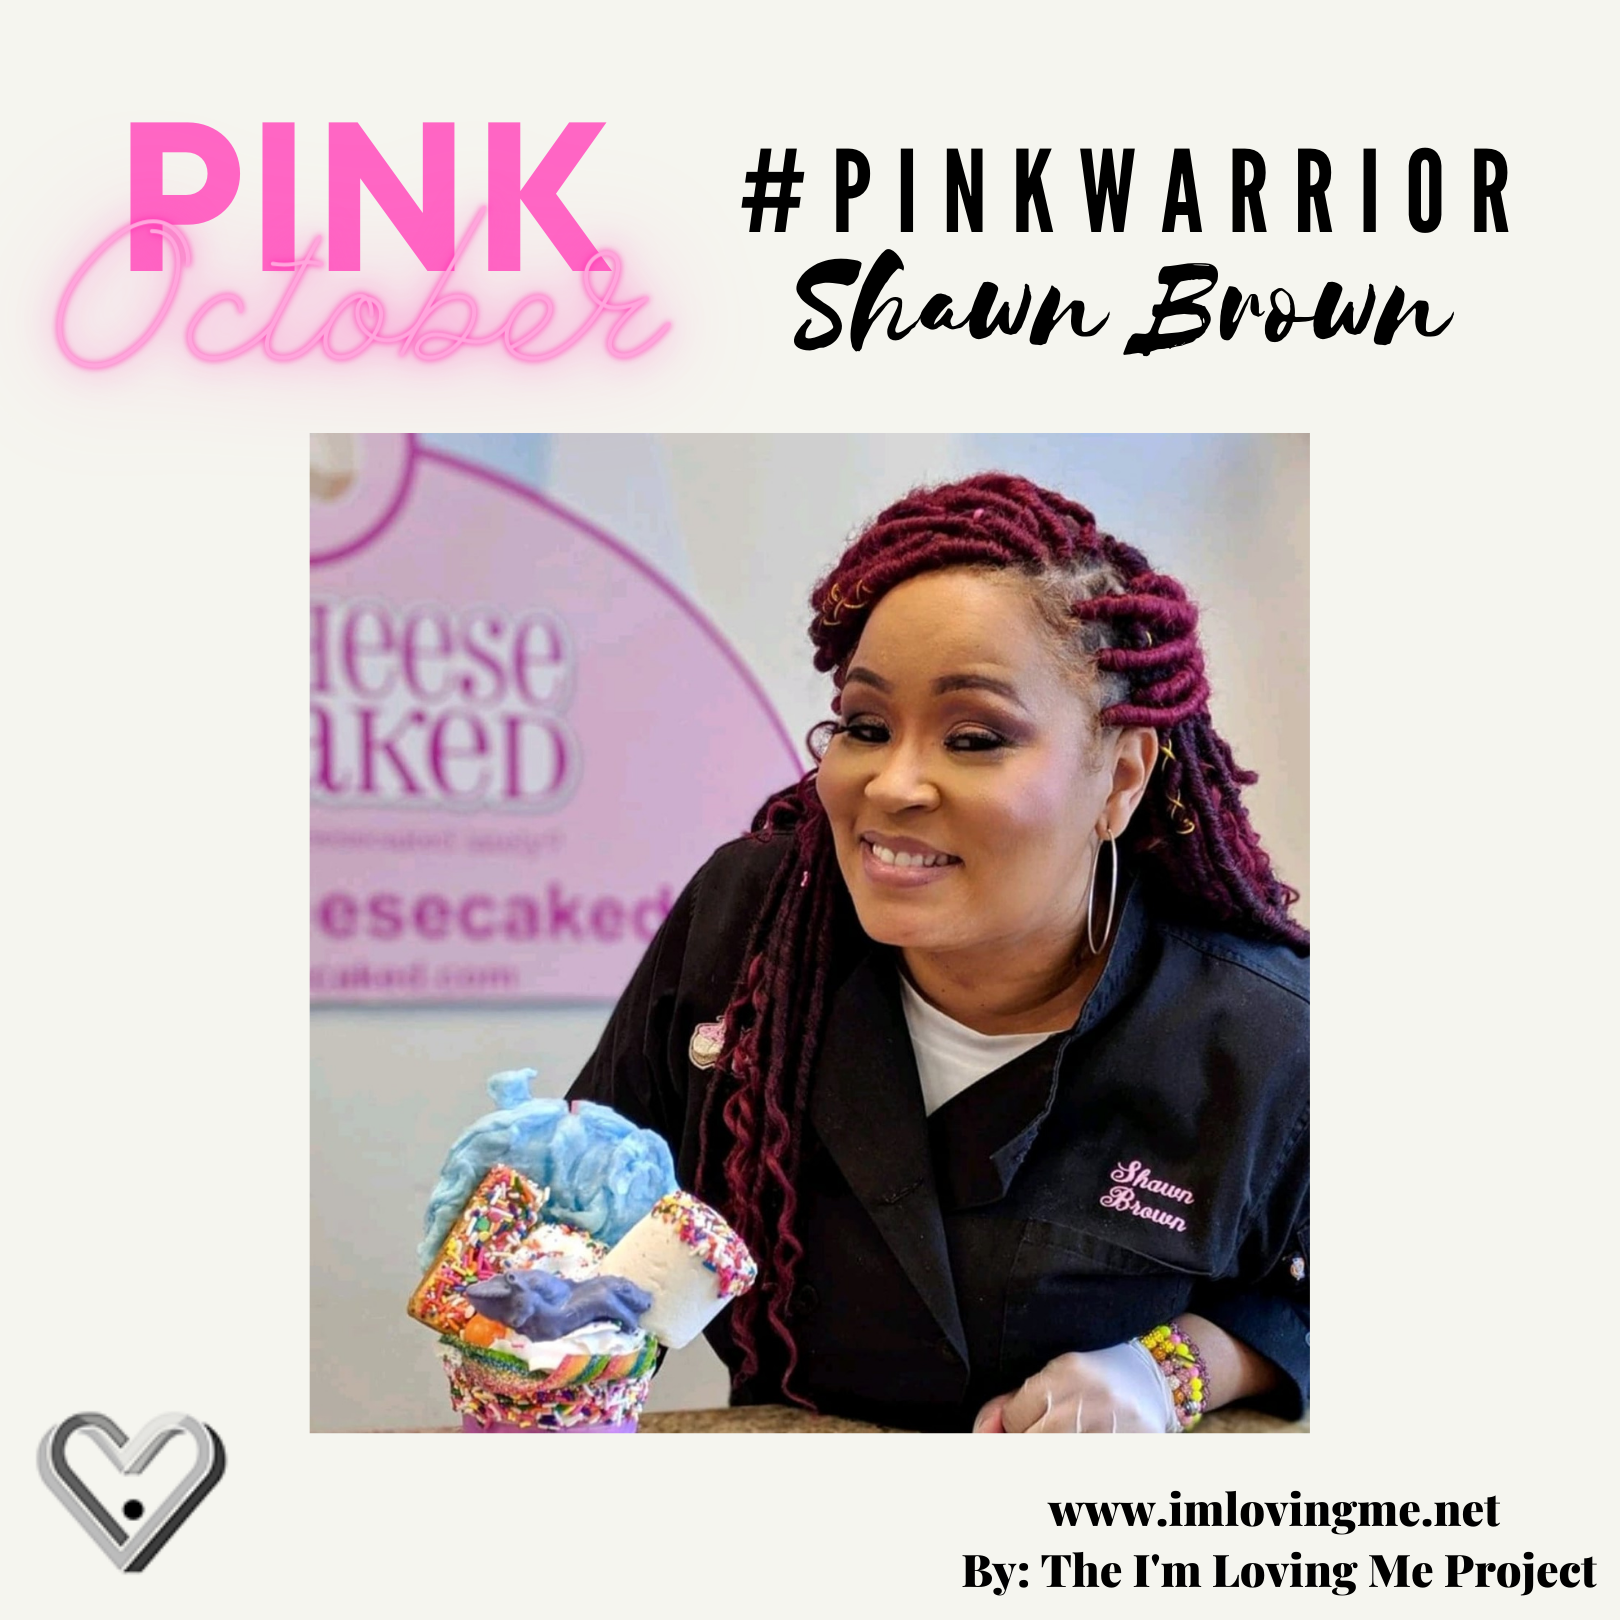 Breast Cancer Doesn't Care If You're A Business Owner: Shawn Brown's Story